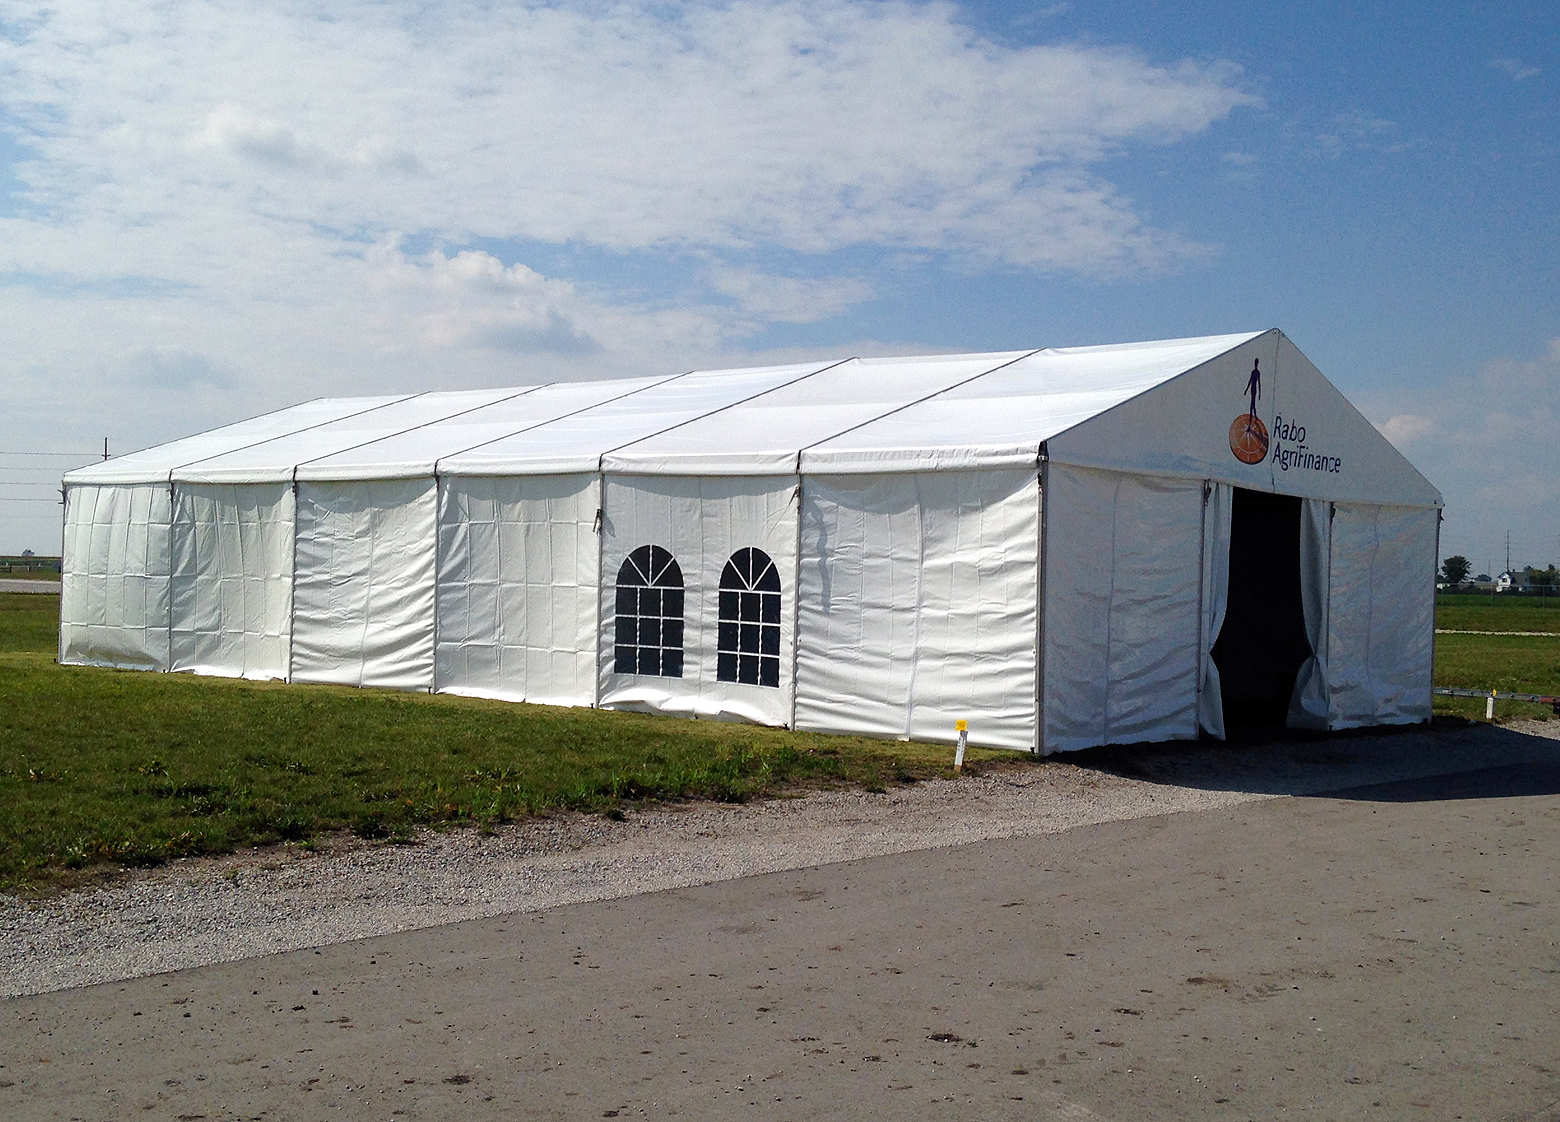 Outside the 30′ x 60′ (9m x 18m) Losberger clearspan temporary structure/tent.